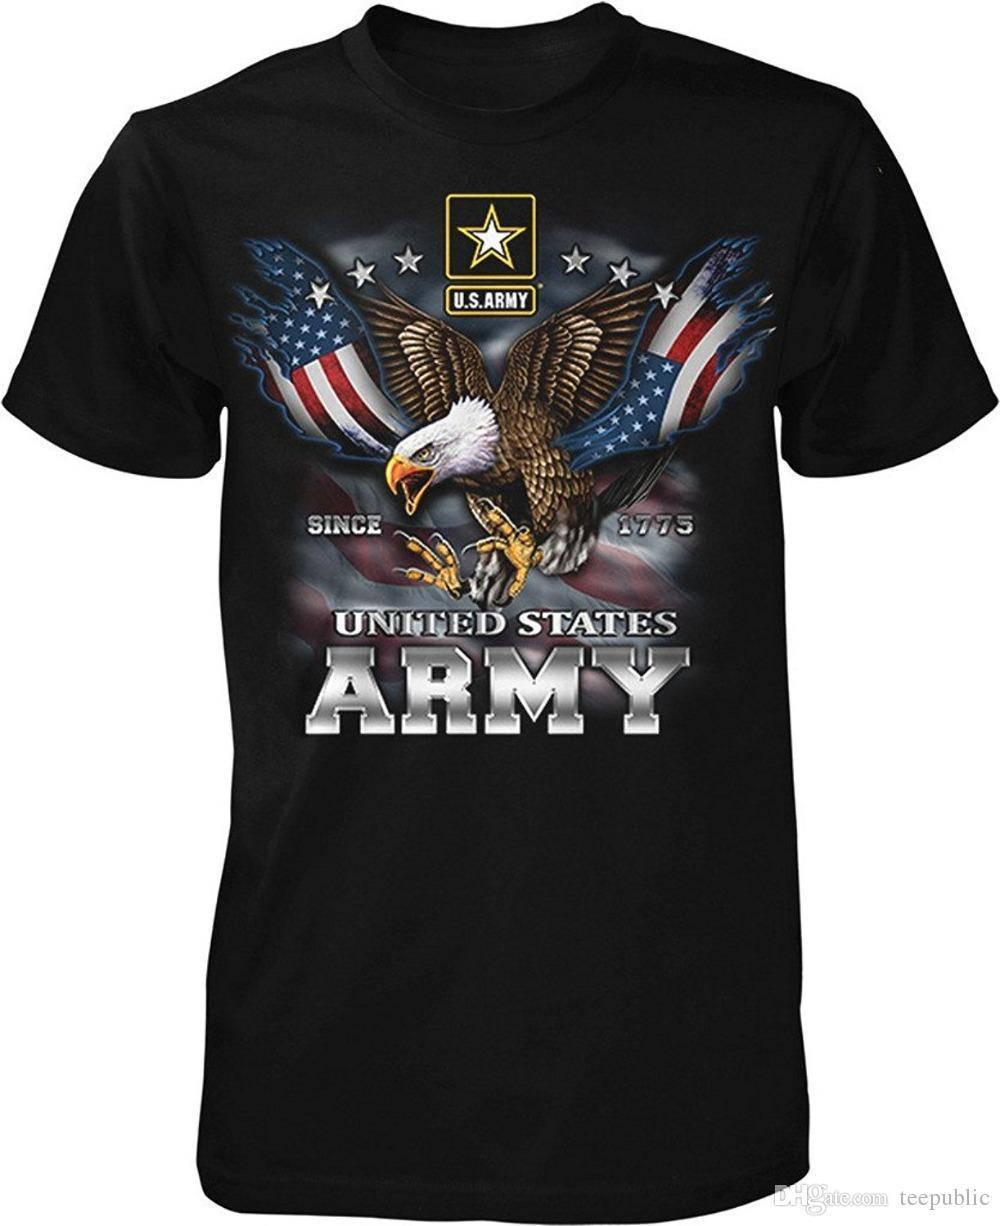 ef0a5c246 T Shirt Printing Company US Army Since 1775 Eagle with American Flag Wings  Men's T-shirt Men's Crew Neck Short-Sleeve Summer